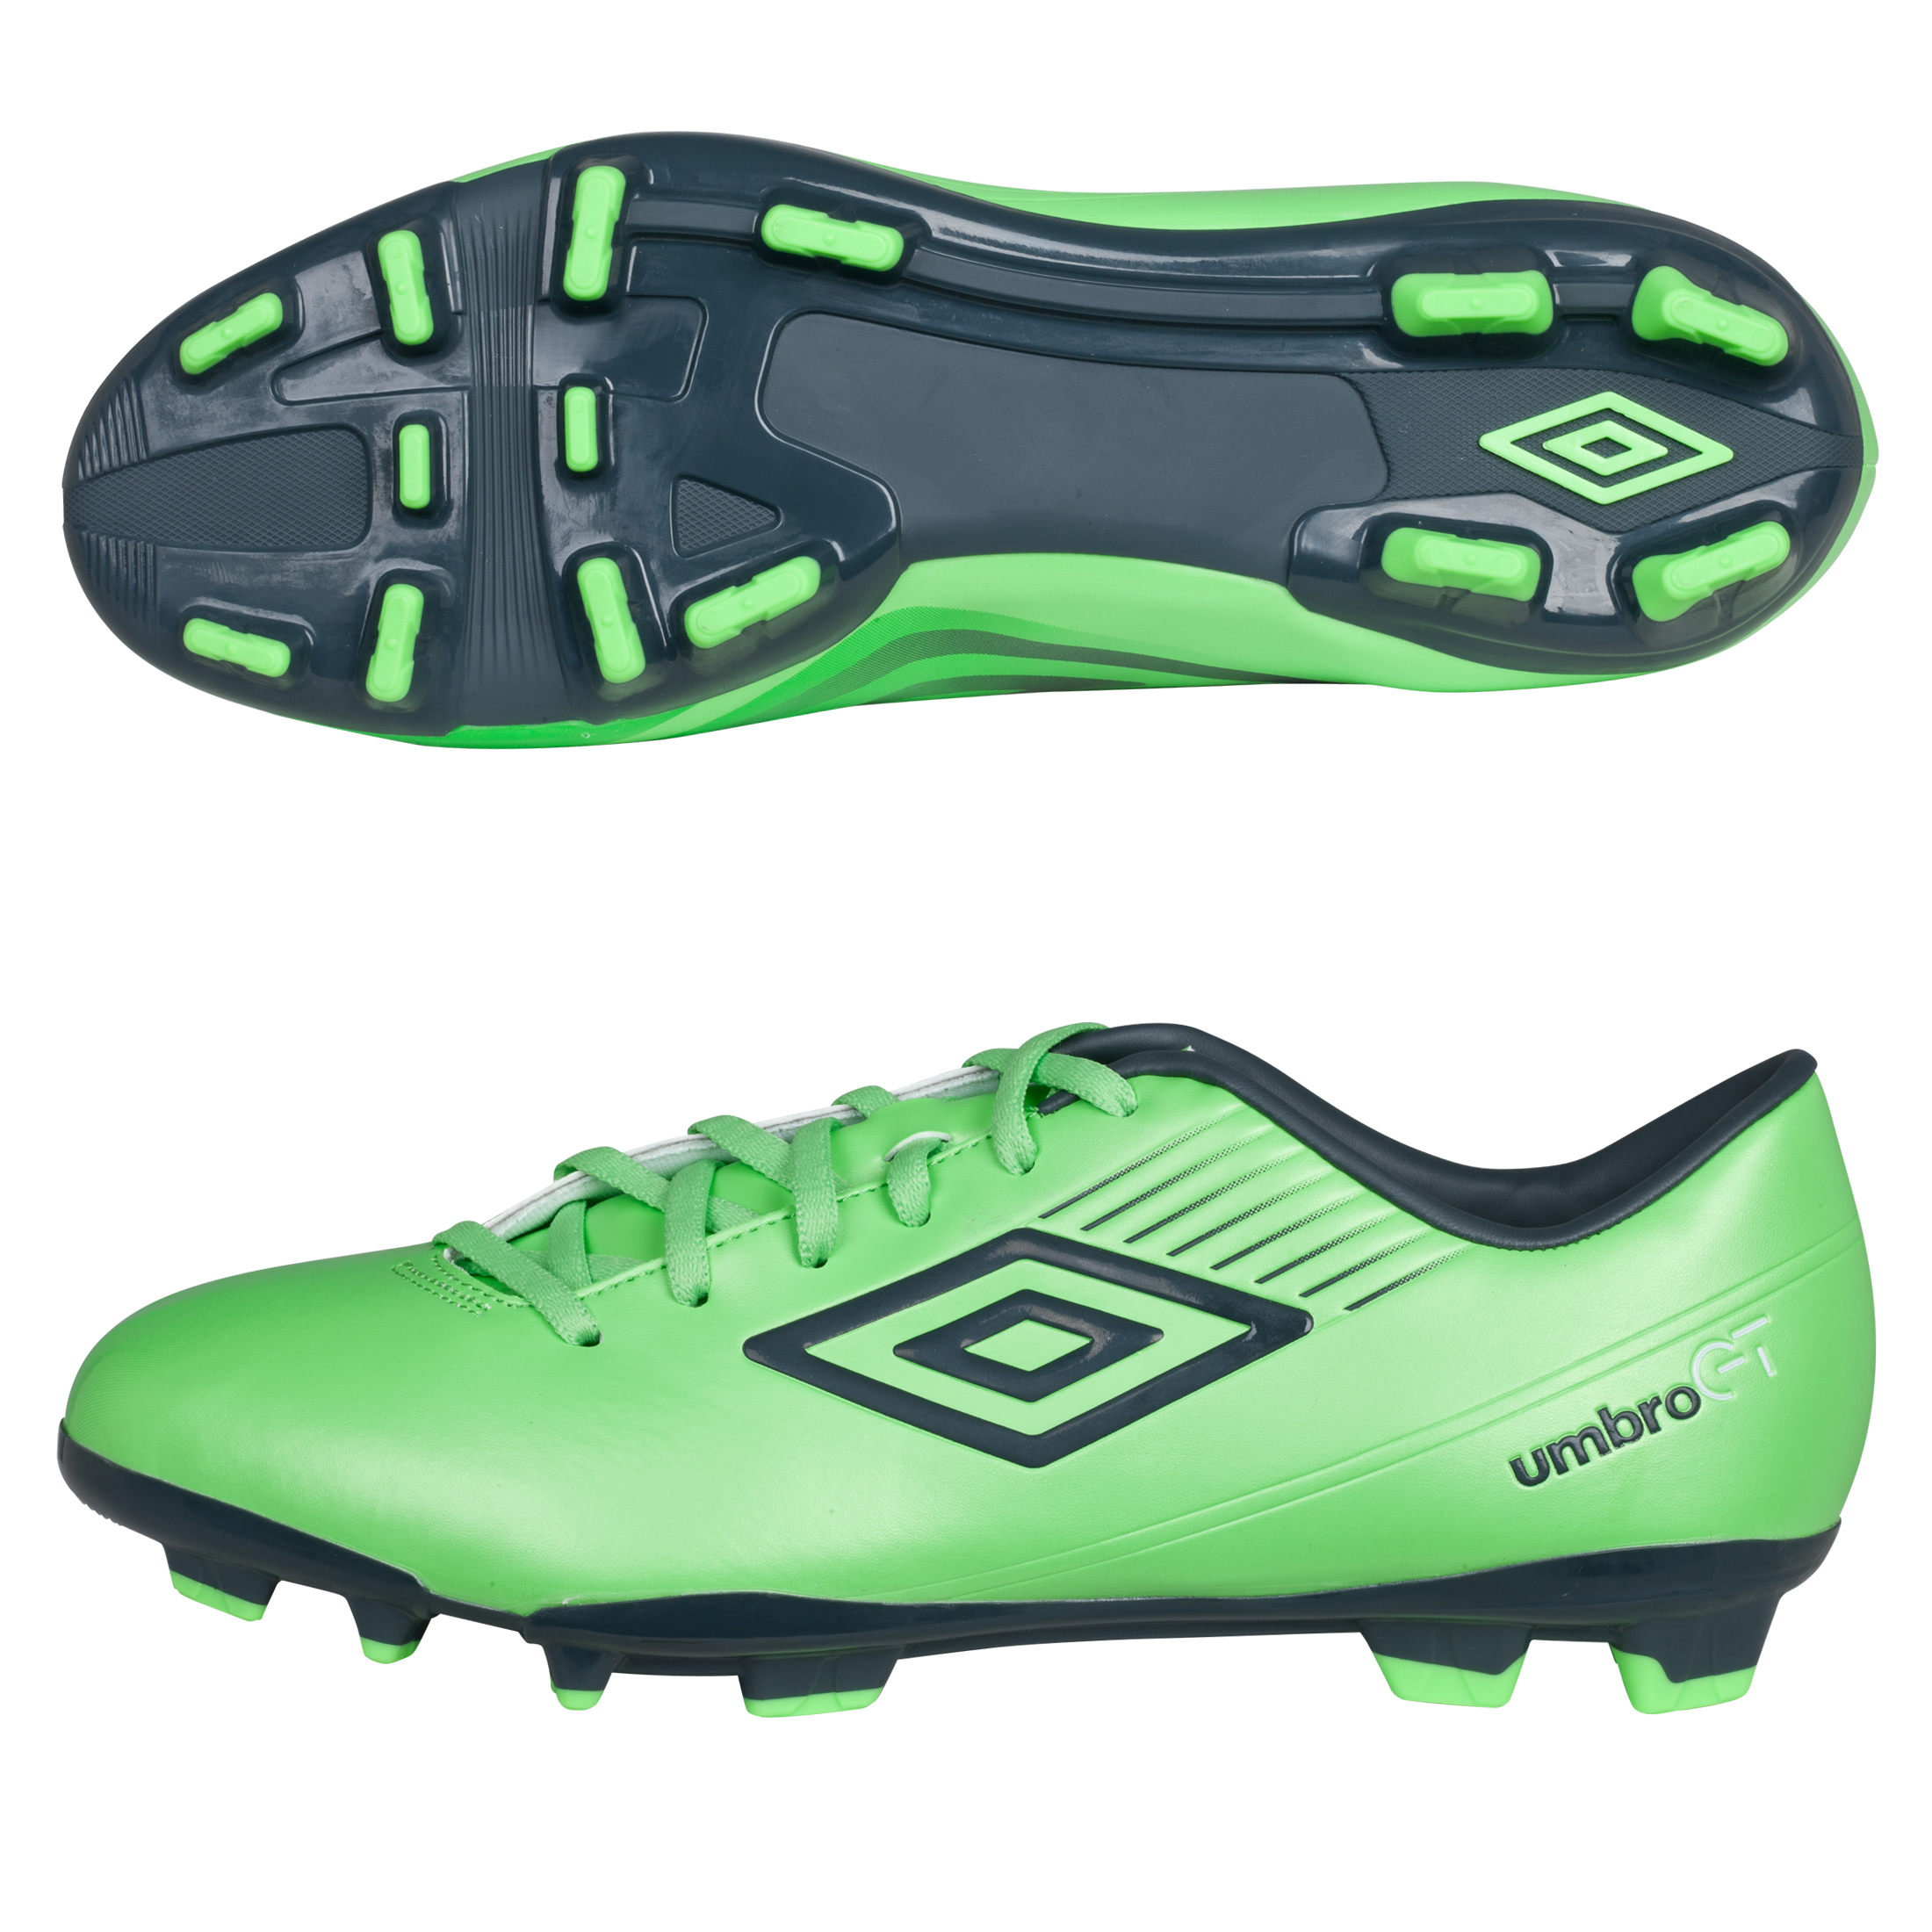 Umbro GT ll Cup Fim Ground Football Boots - Summer Green/Carbon/White